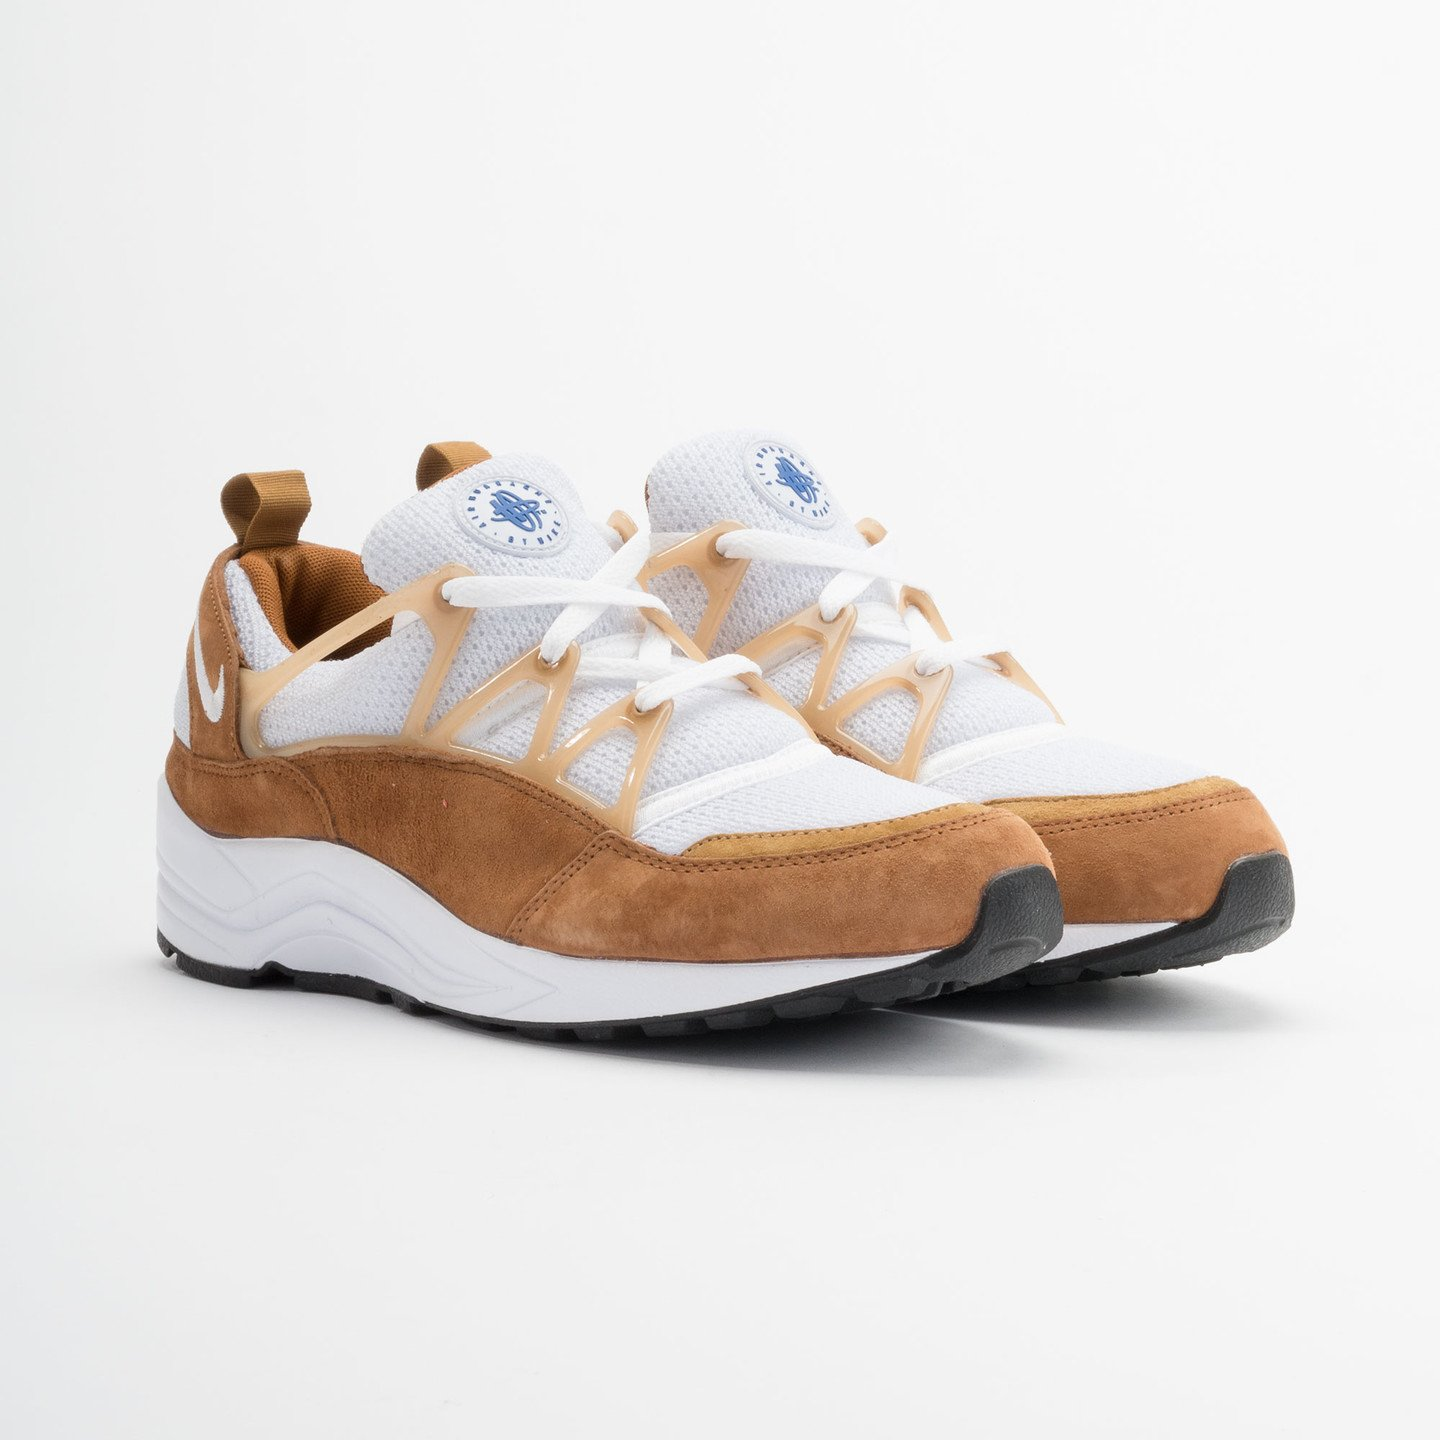 Nike Air Huarache Light Dark Curry / White-Wheat 306127-717-45